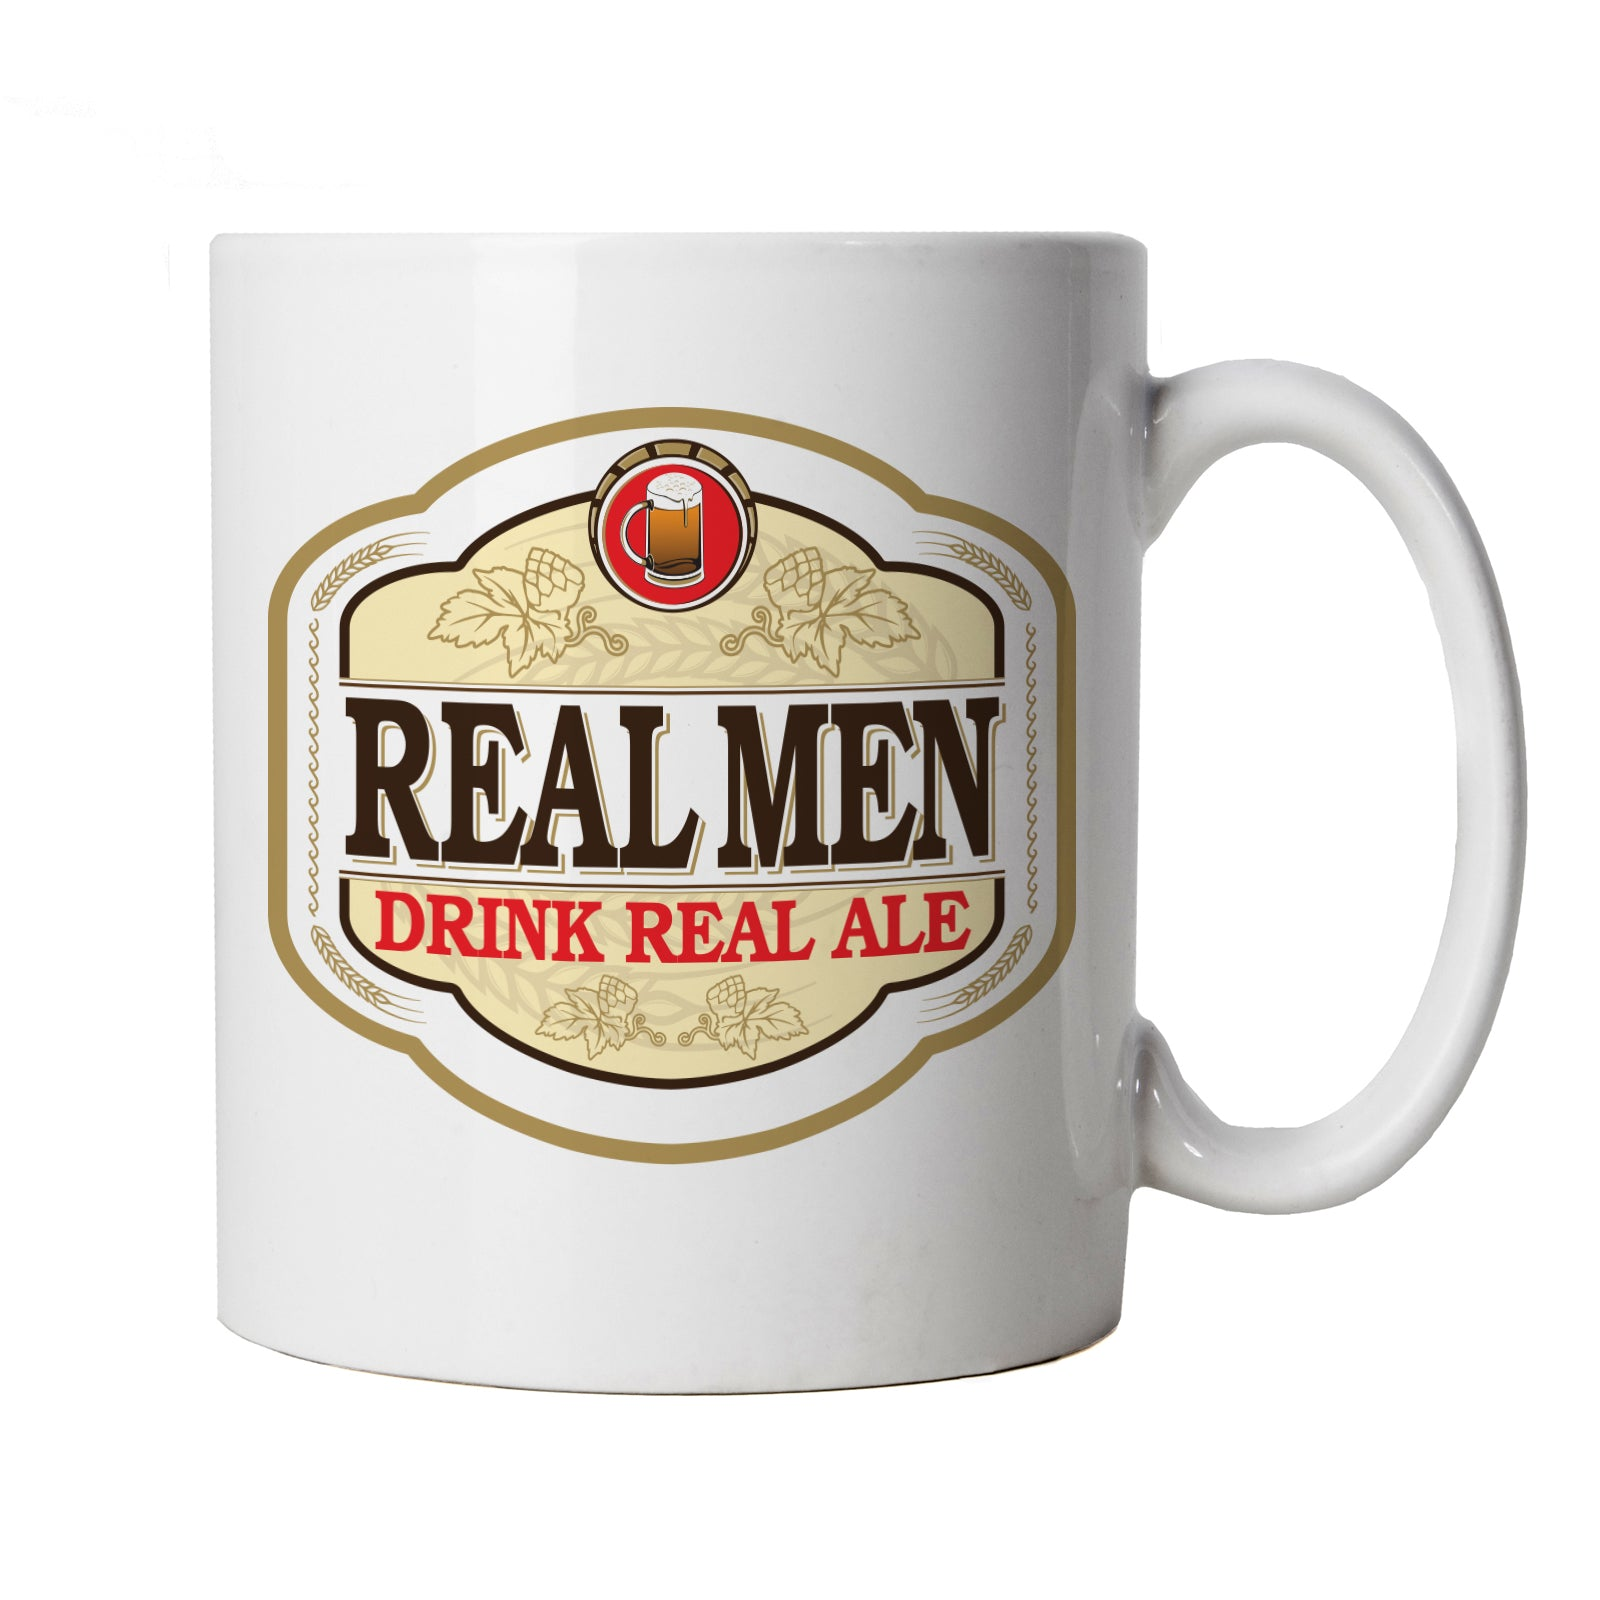 Real Men Drink Real Ale Mug | Beer Ale Brewing Distillery Hops Tap Pint Mild | Drink Beer Wine Cheers Celebrate Tipple Snifter | Drinking Cup Gift